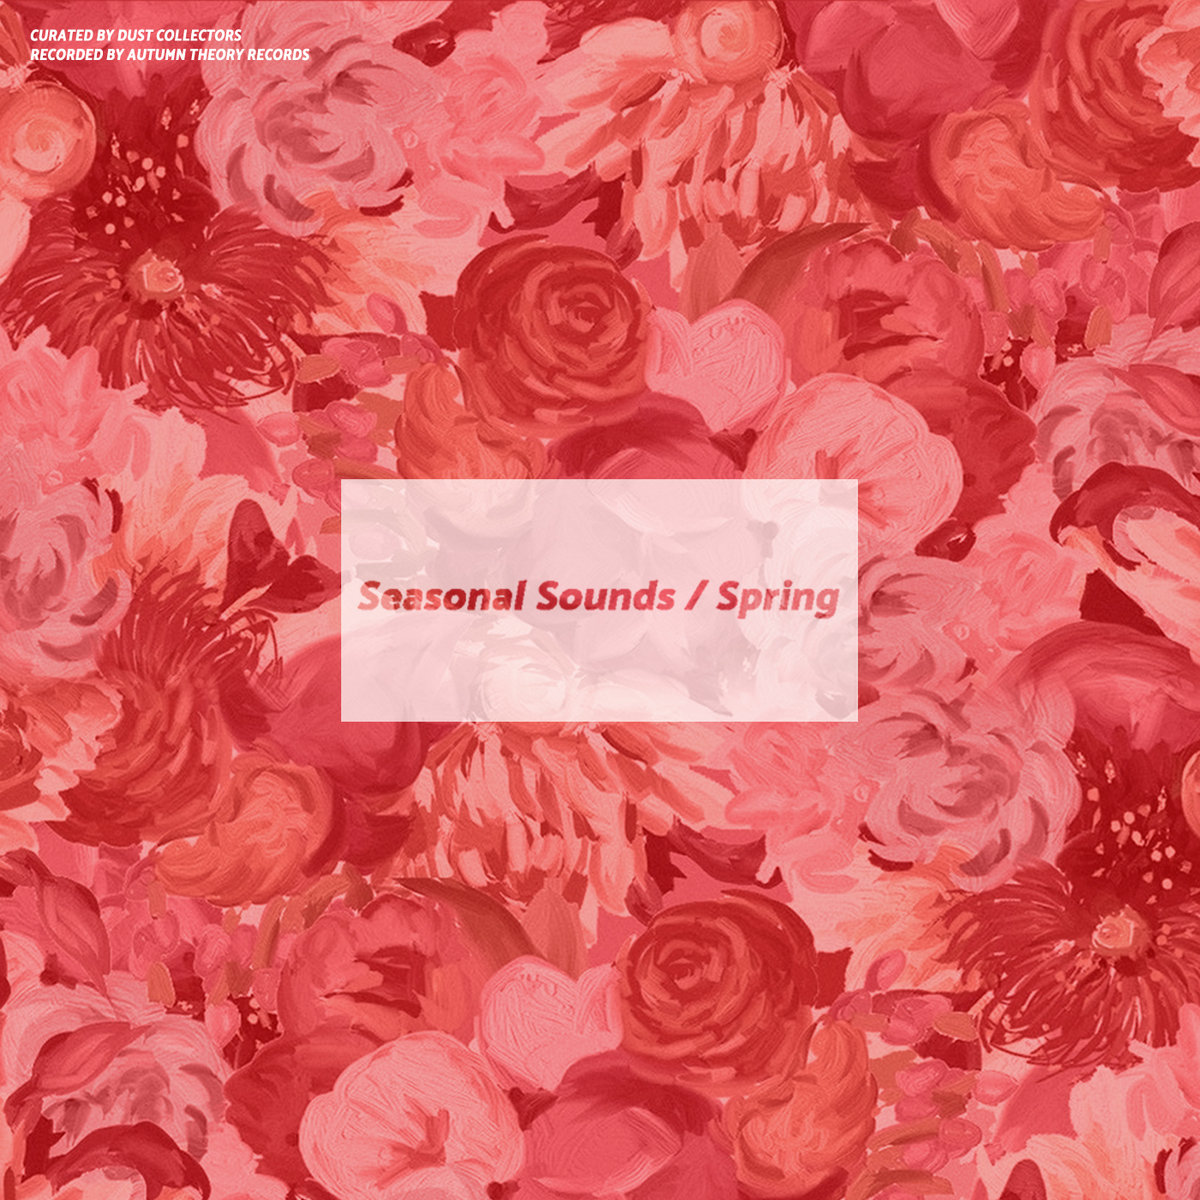 ATR022: Seasonal Sounds / Spring